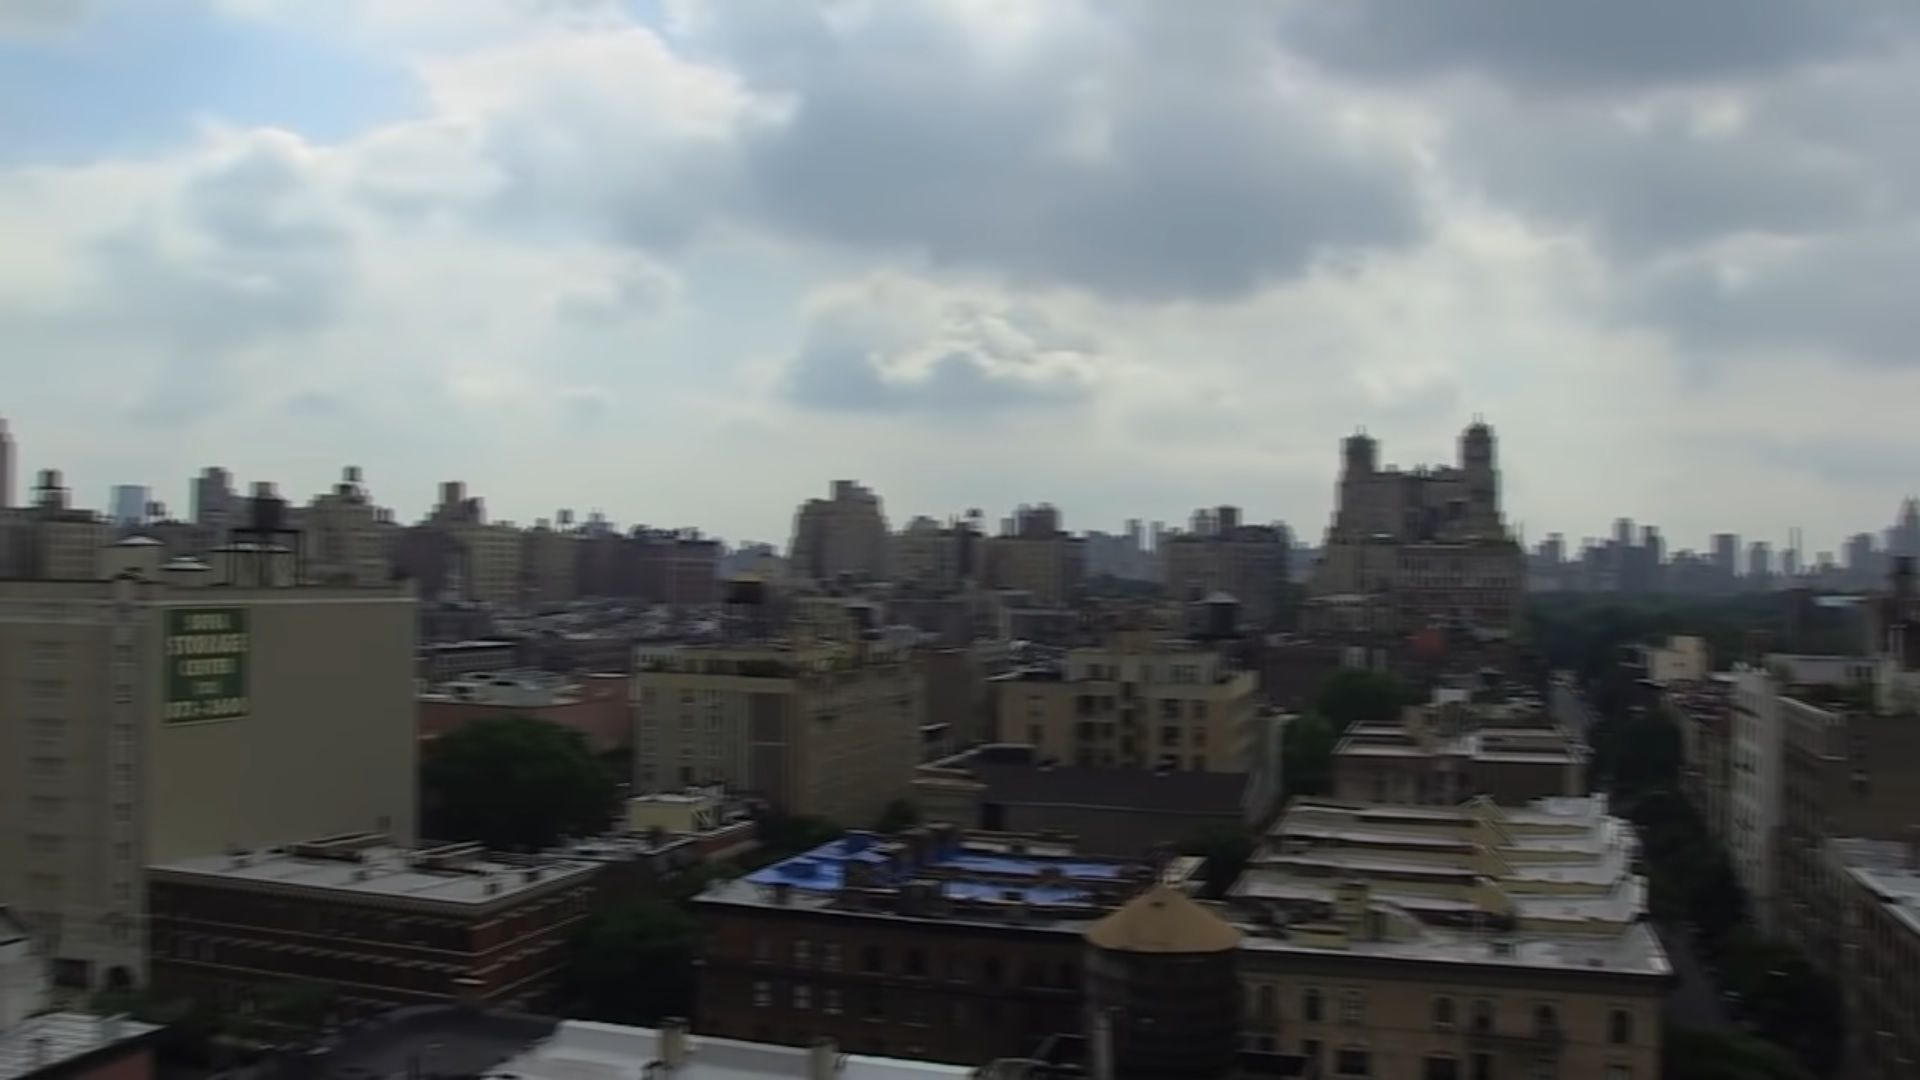 The Upper West Side of Manhattan, from a promotional video for Bleeding Edge